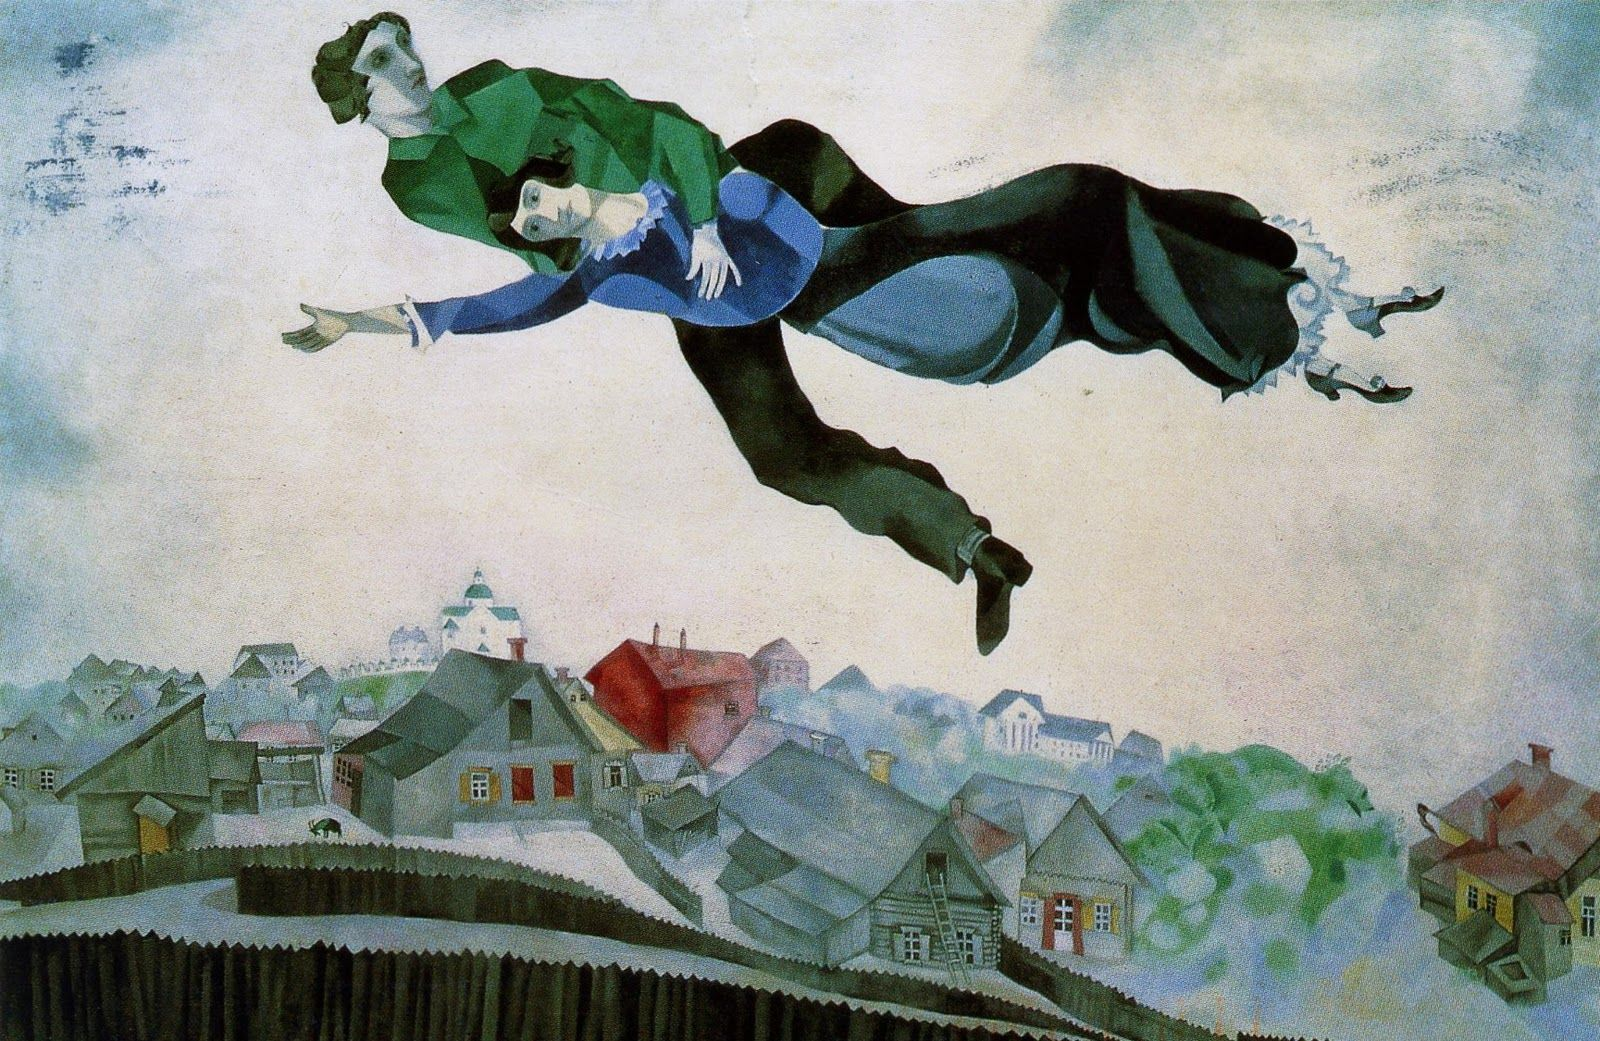 Over the Tawn - Marc Chagall